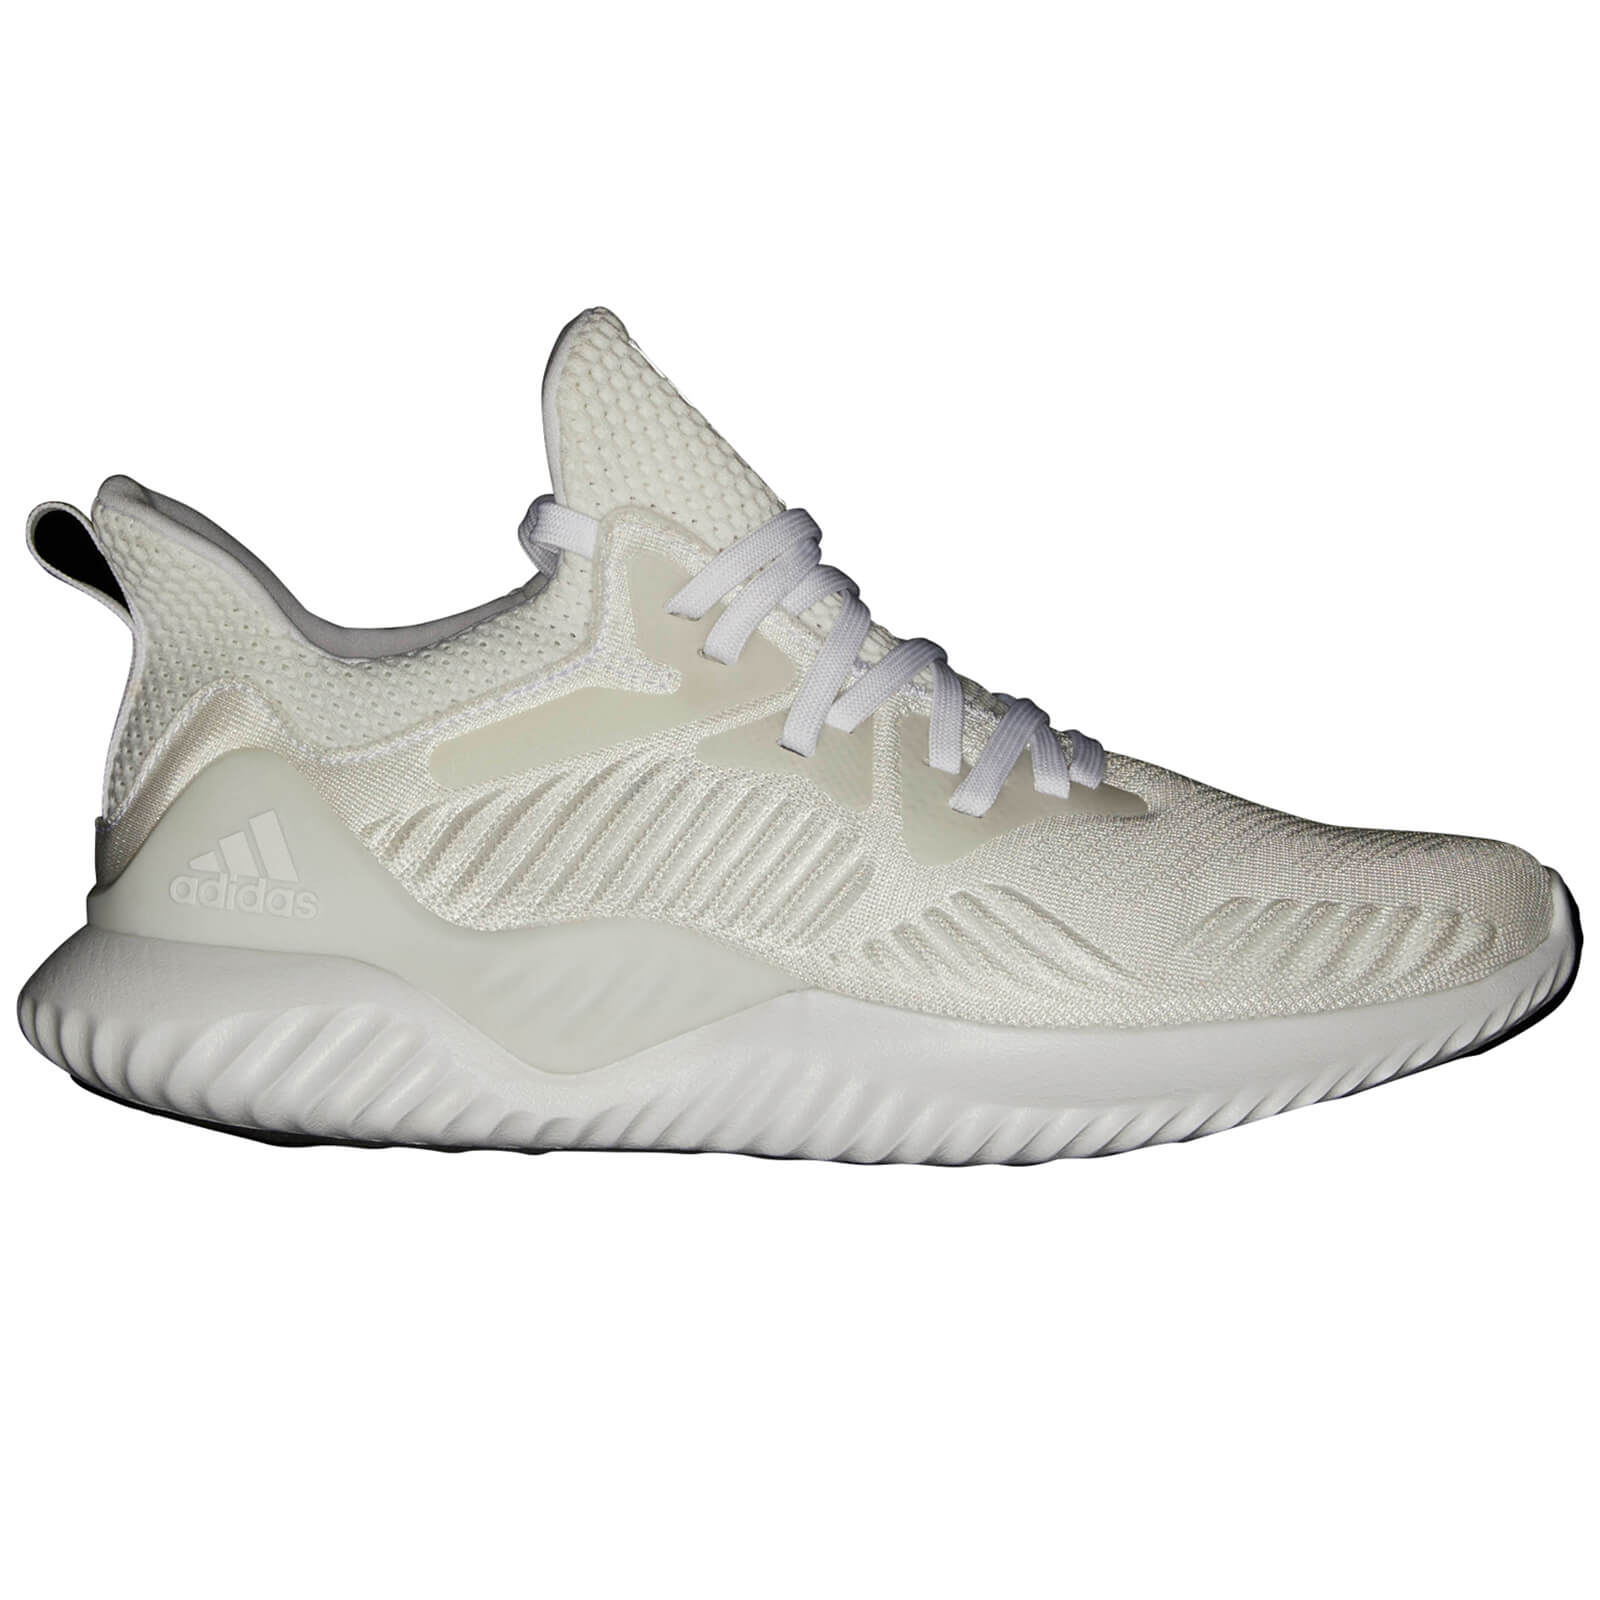 d5afc126b adidas Women s Alphabounce 2 Training Shoes - White Silver ...